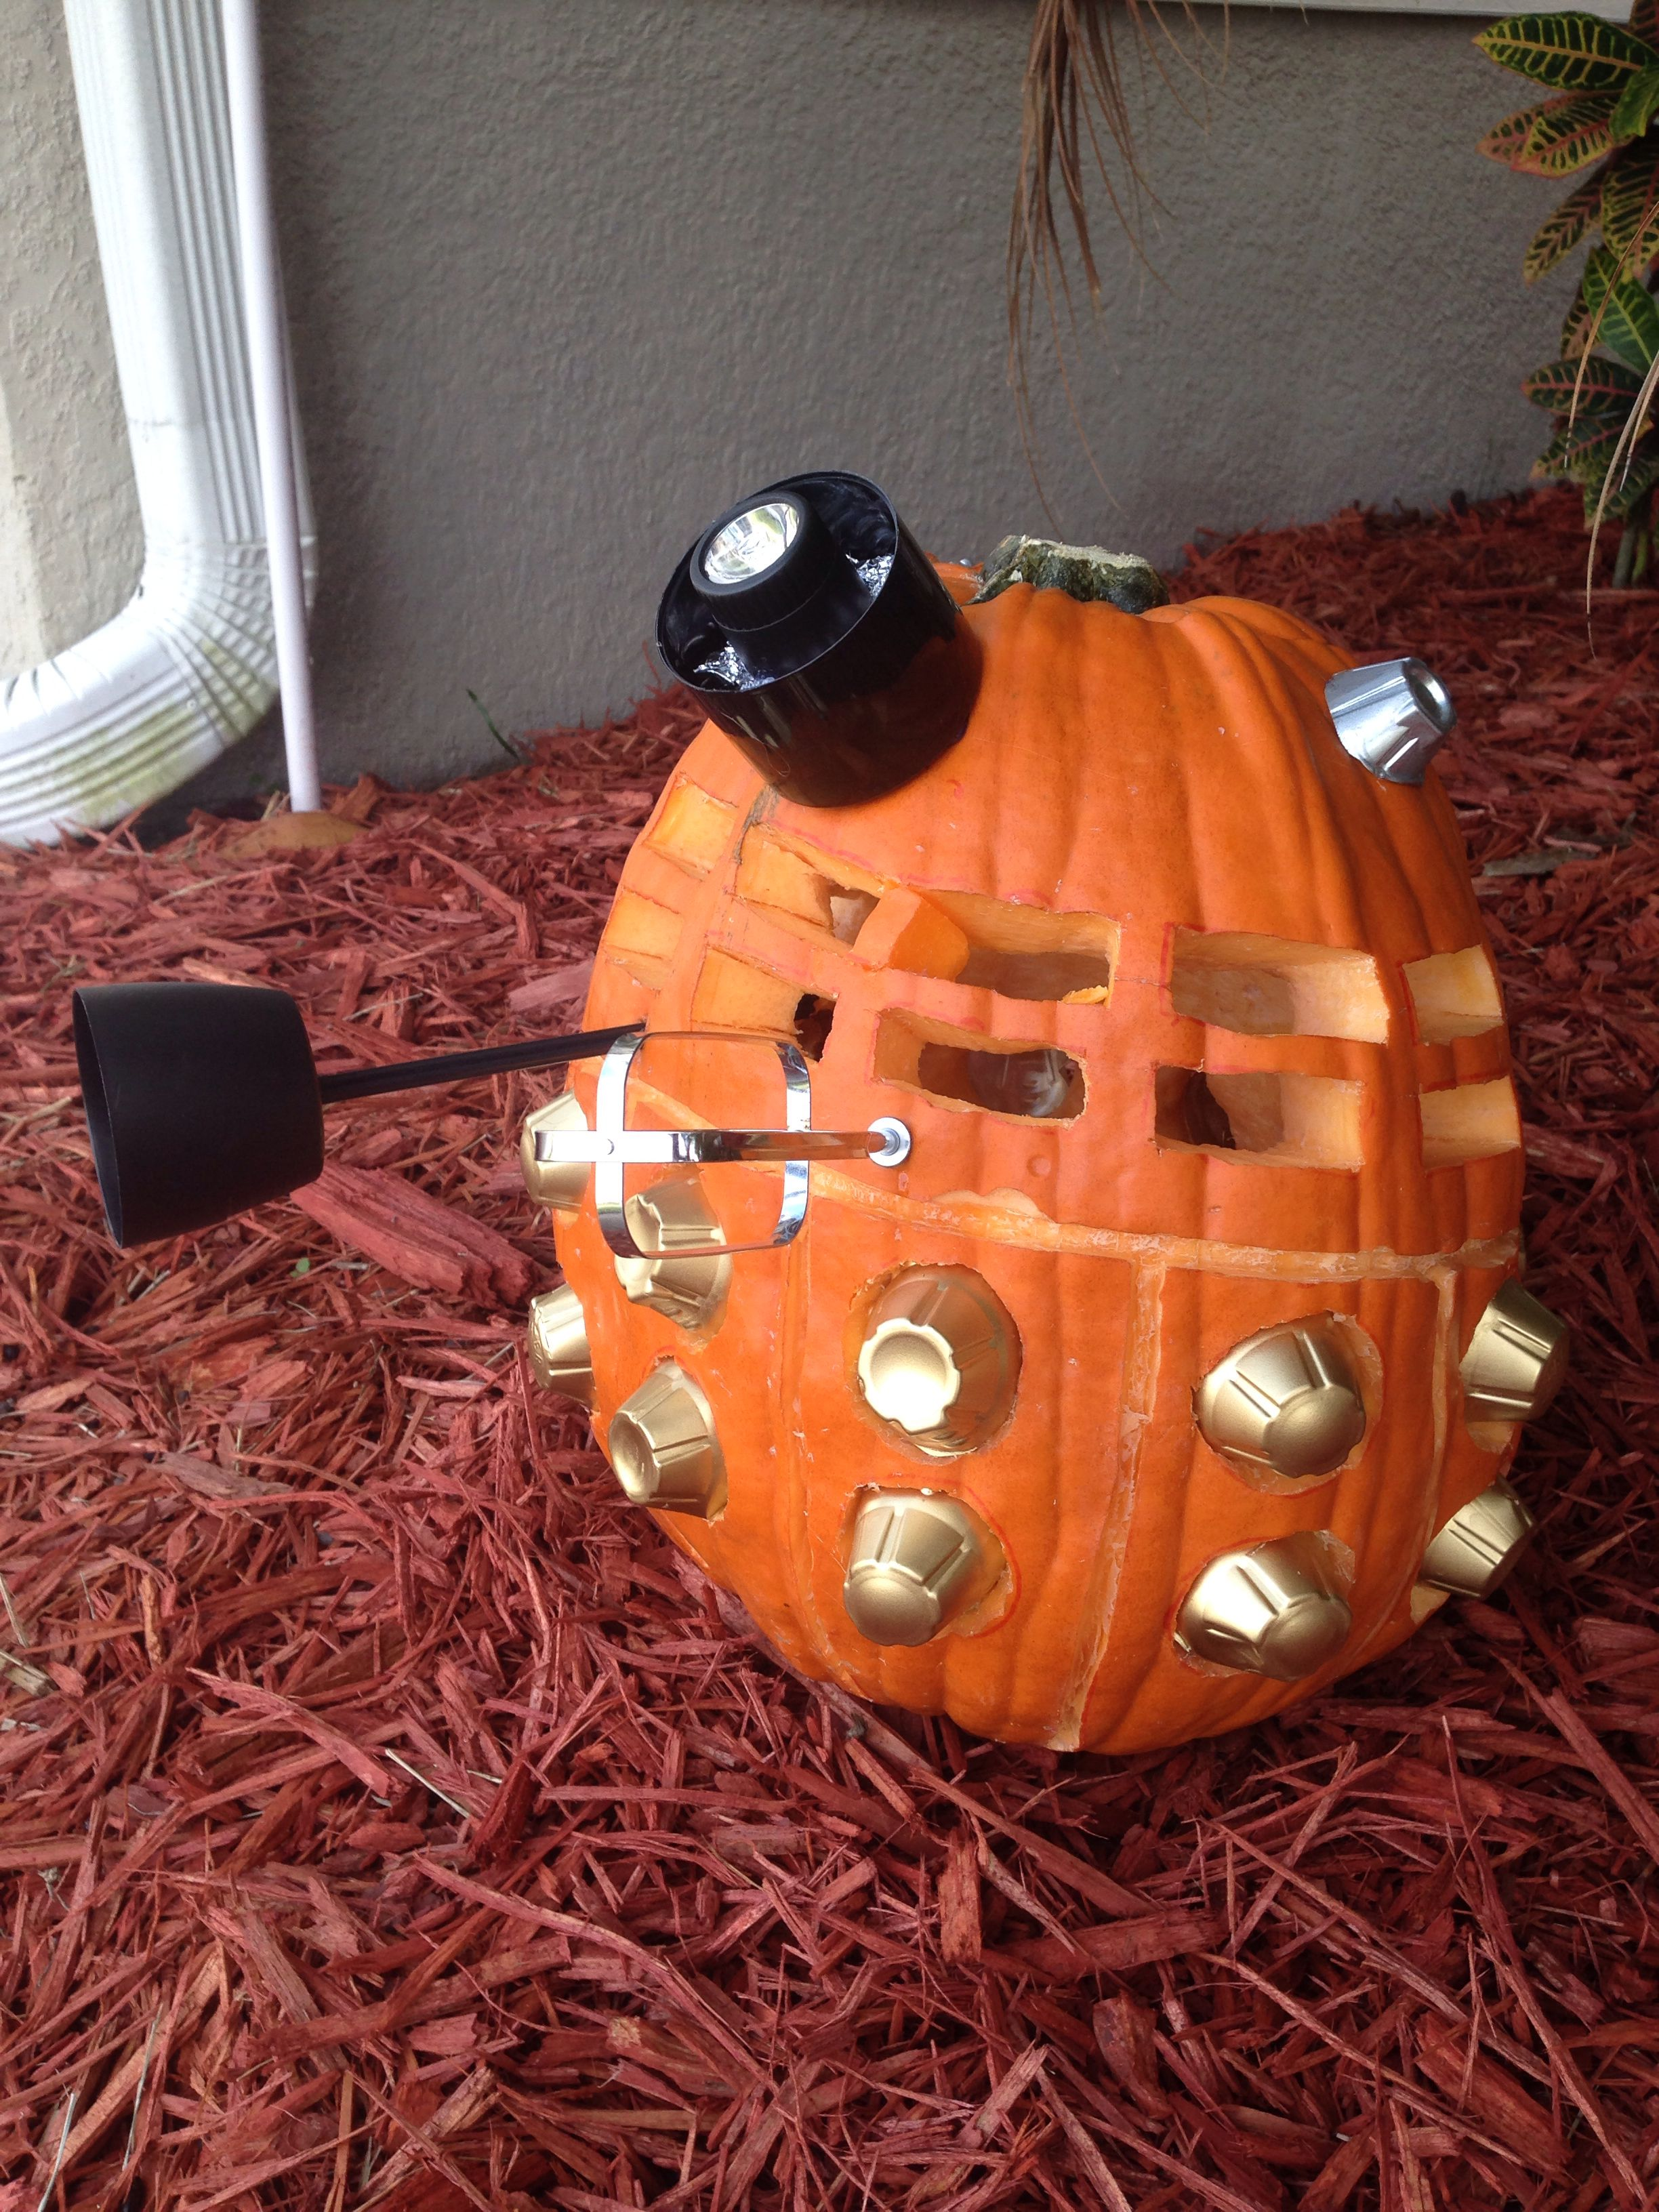 My Dalek pumpkin this year ) Halloween costumes